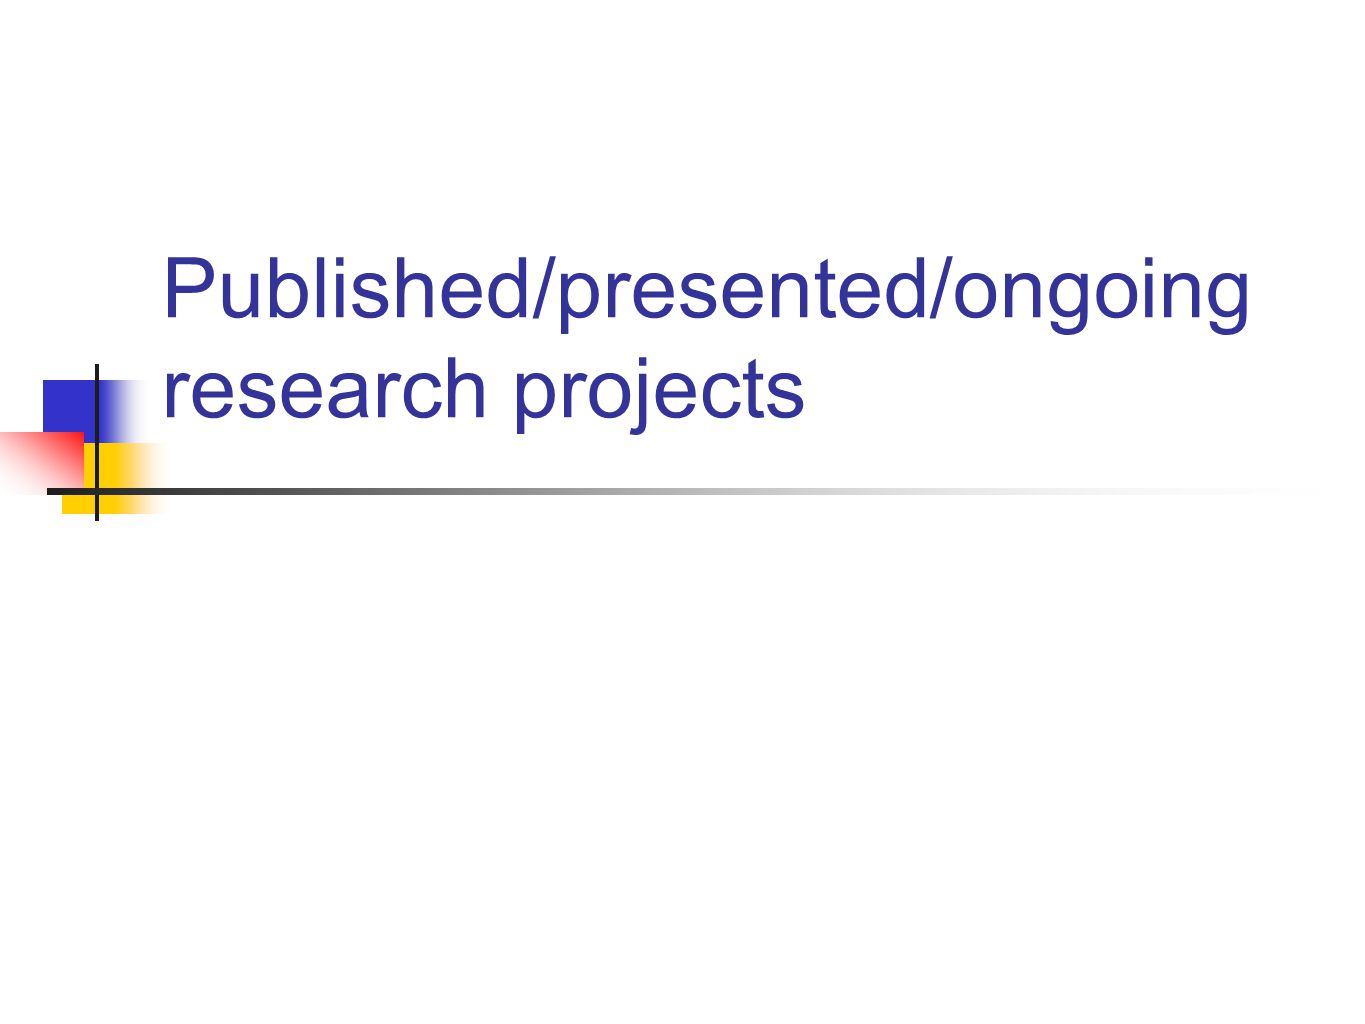 Published/presented/ongoing research projects